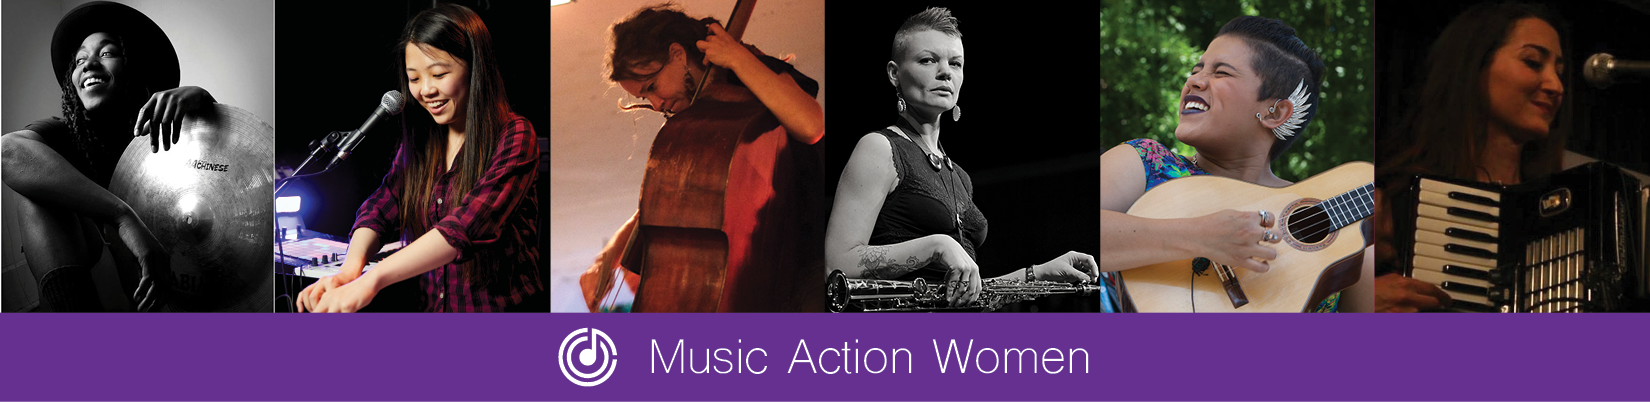 Music Action Women | Giant Steps